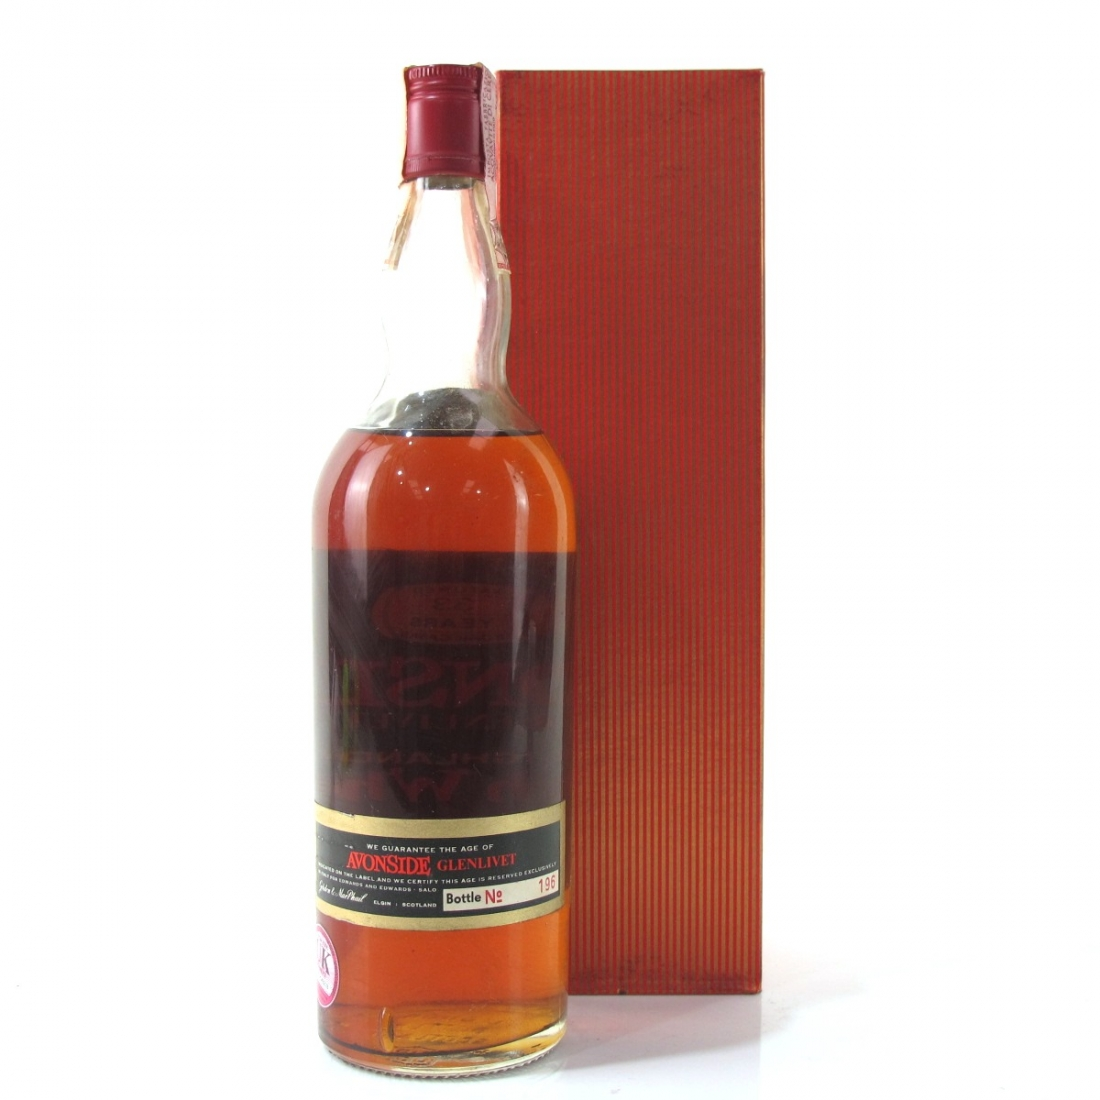 Avonside 1938 Gordon and MacPhail 33 Year Old